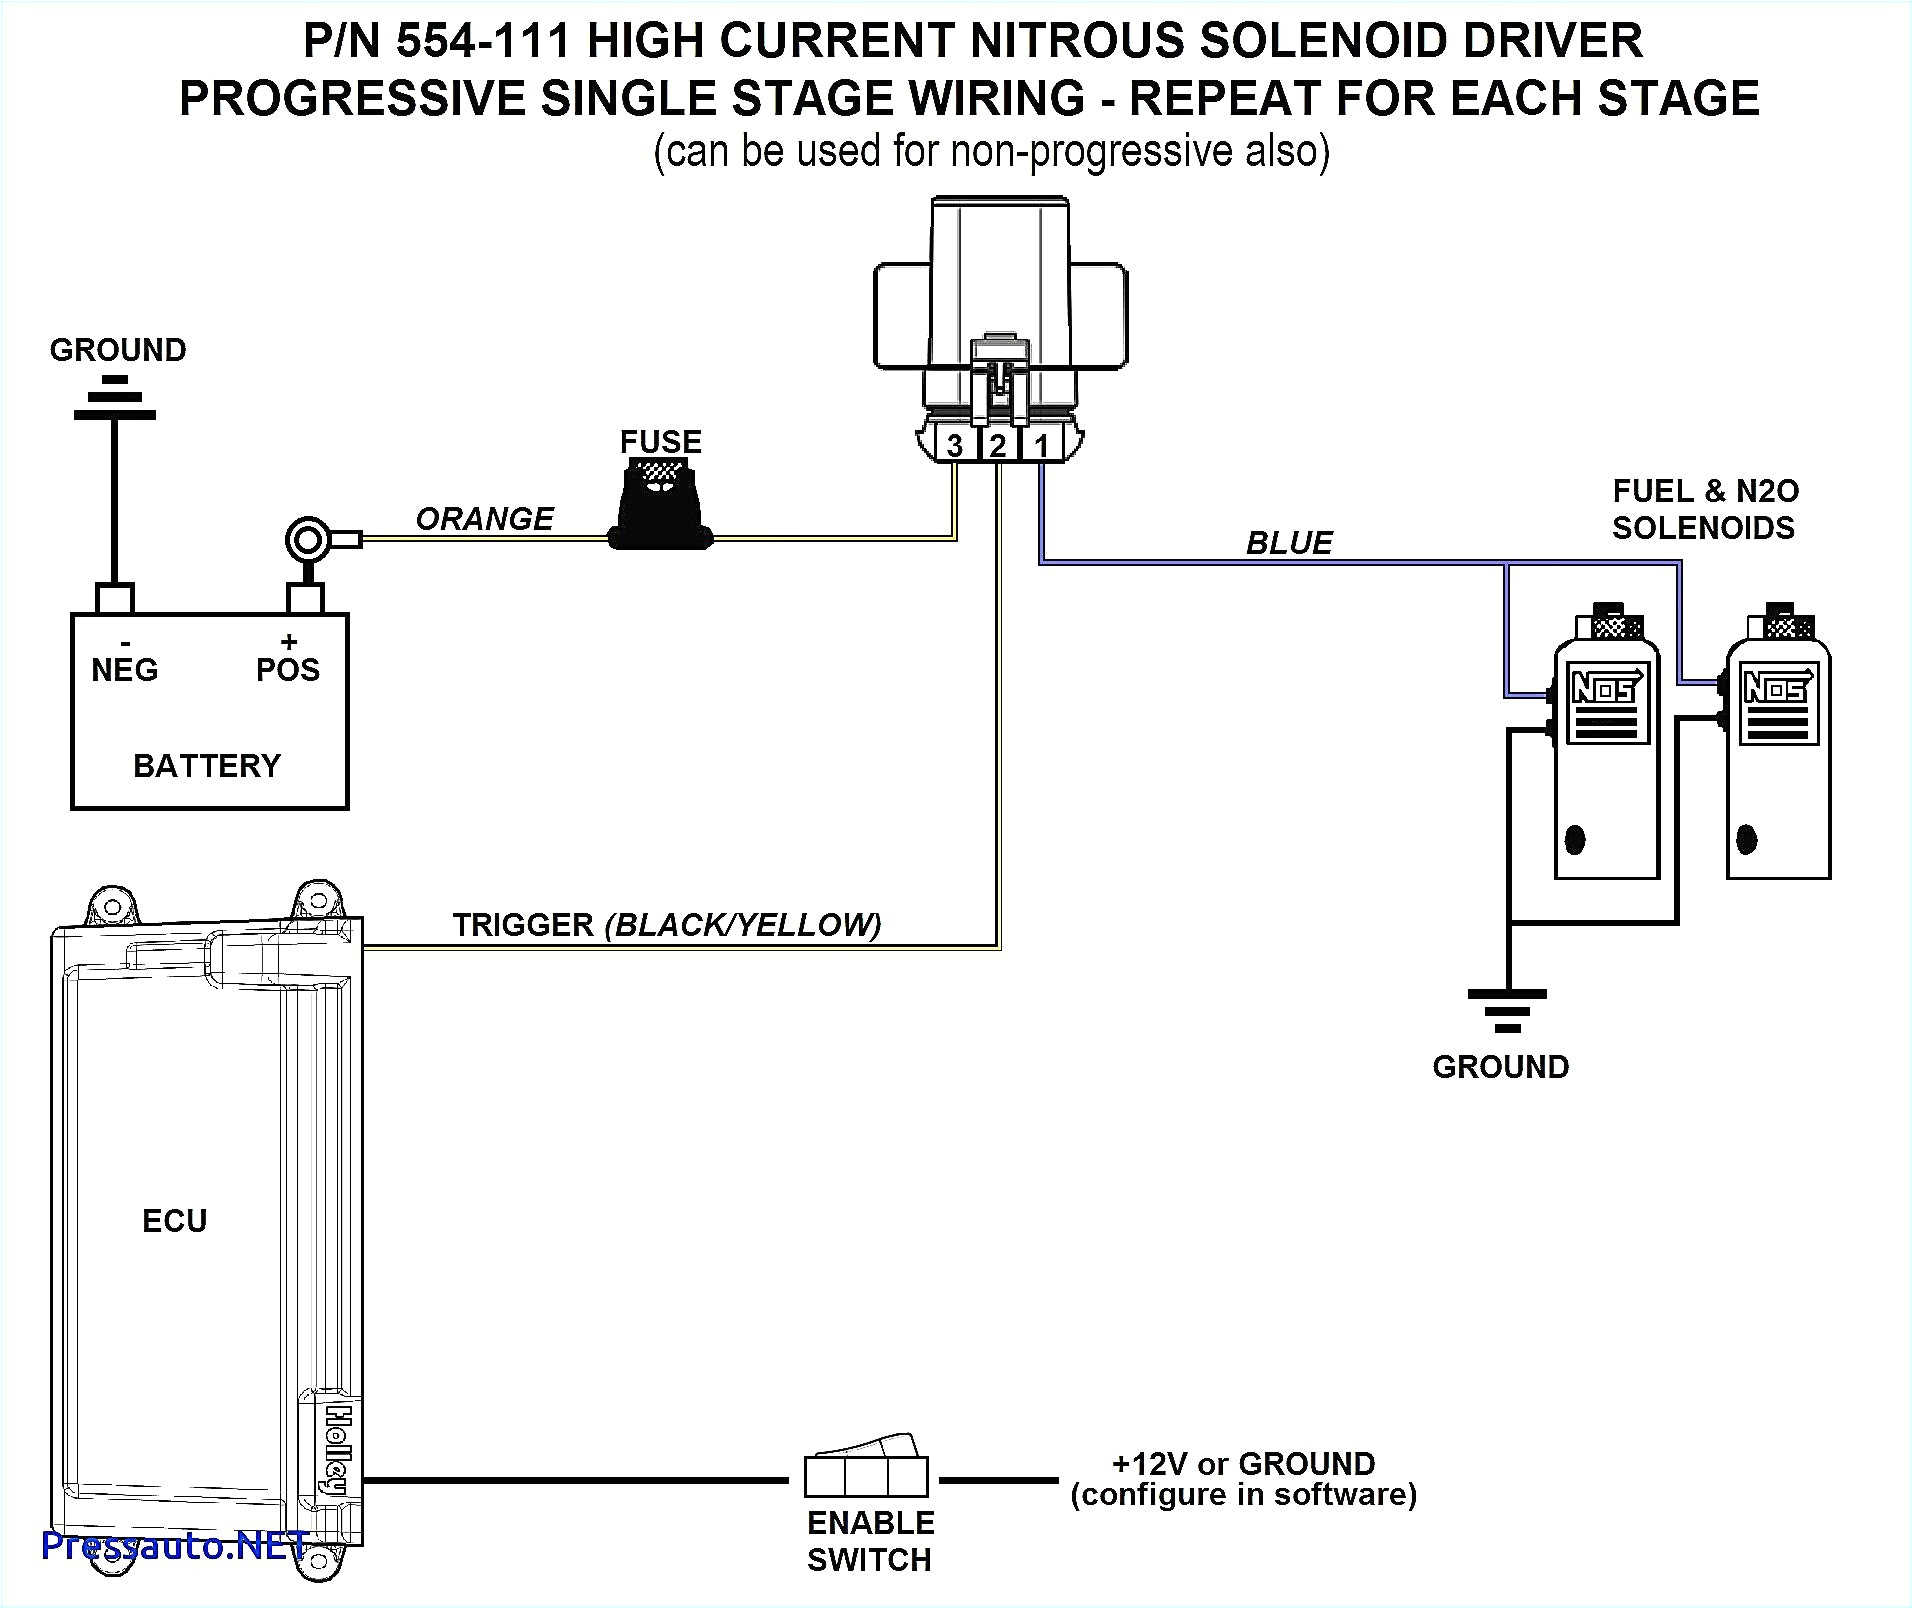 ford fuel pump relay wiring diagram fresh inspirational fuel pump relay wiring diagram electrical outlet